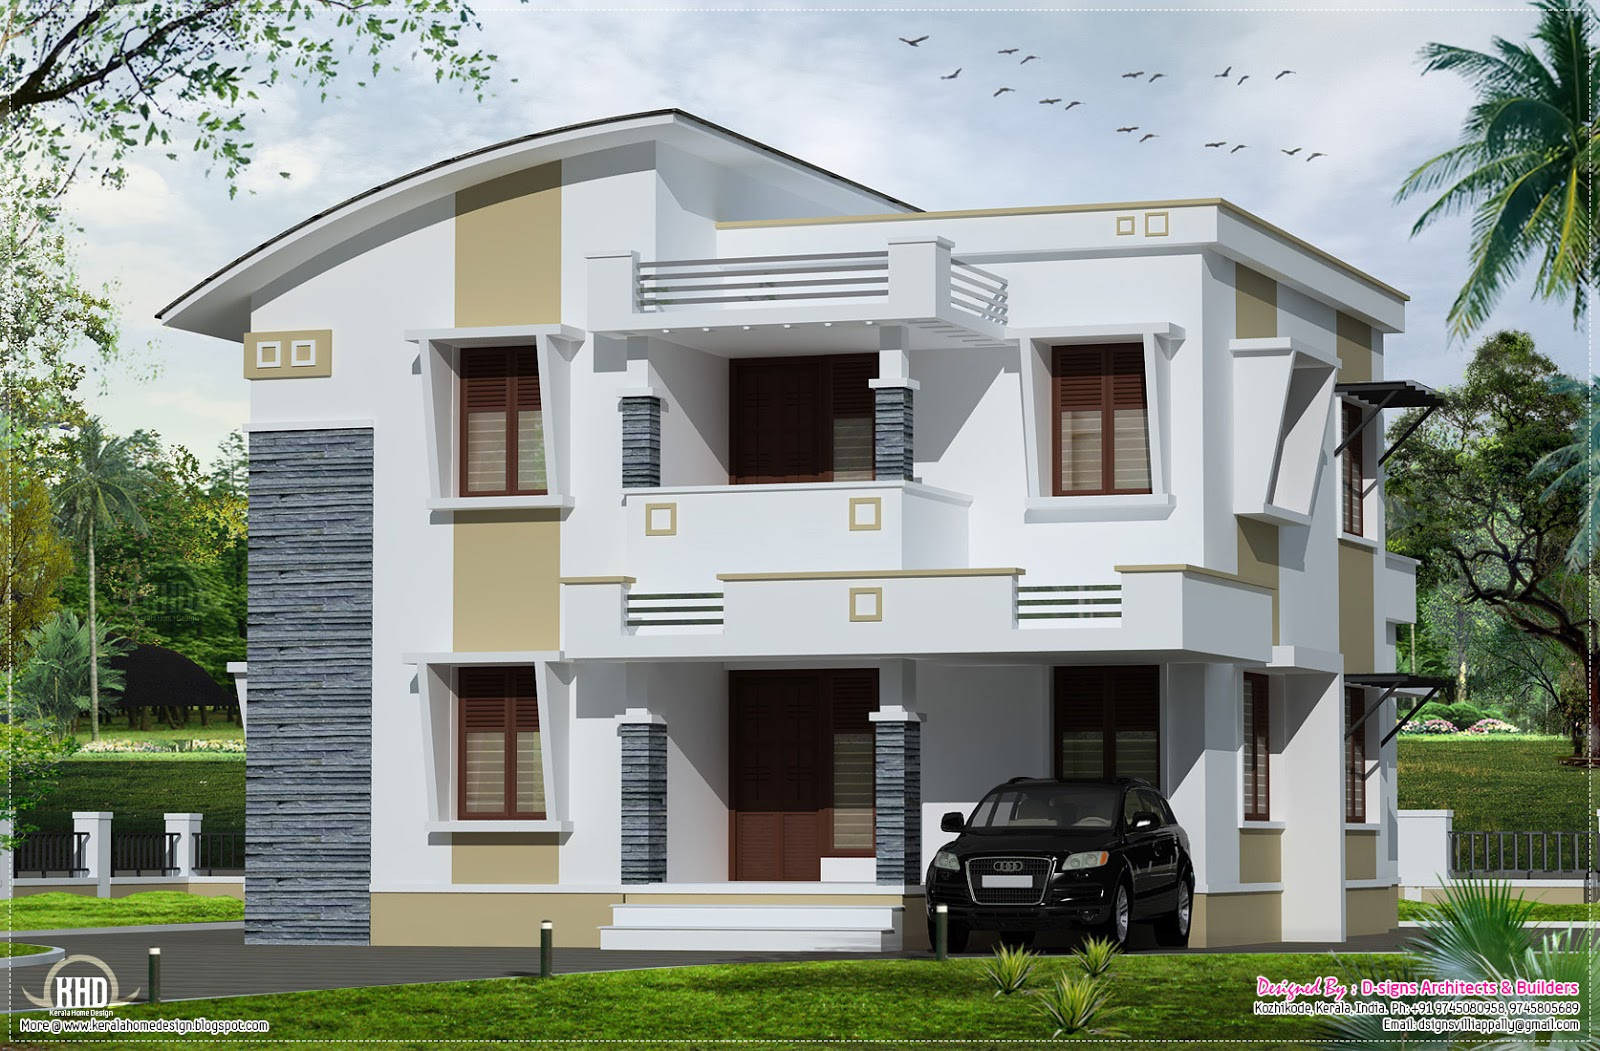 Simple Flat Roof Home Design In 1800 Kerala Home: small flat roof house